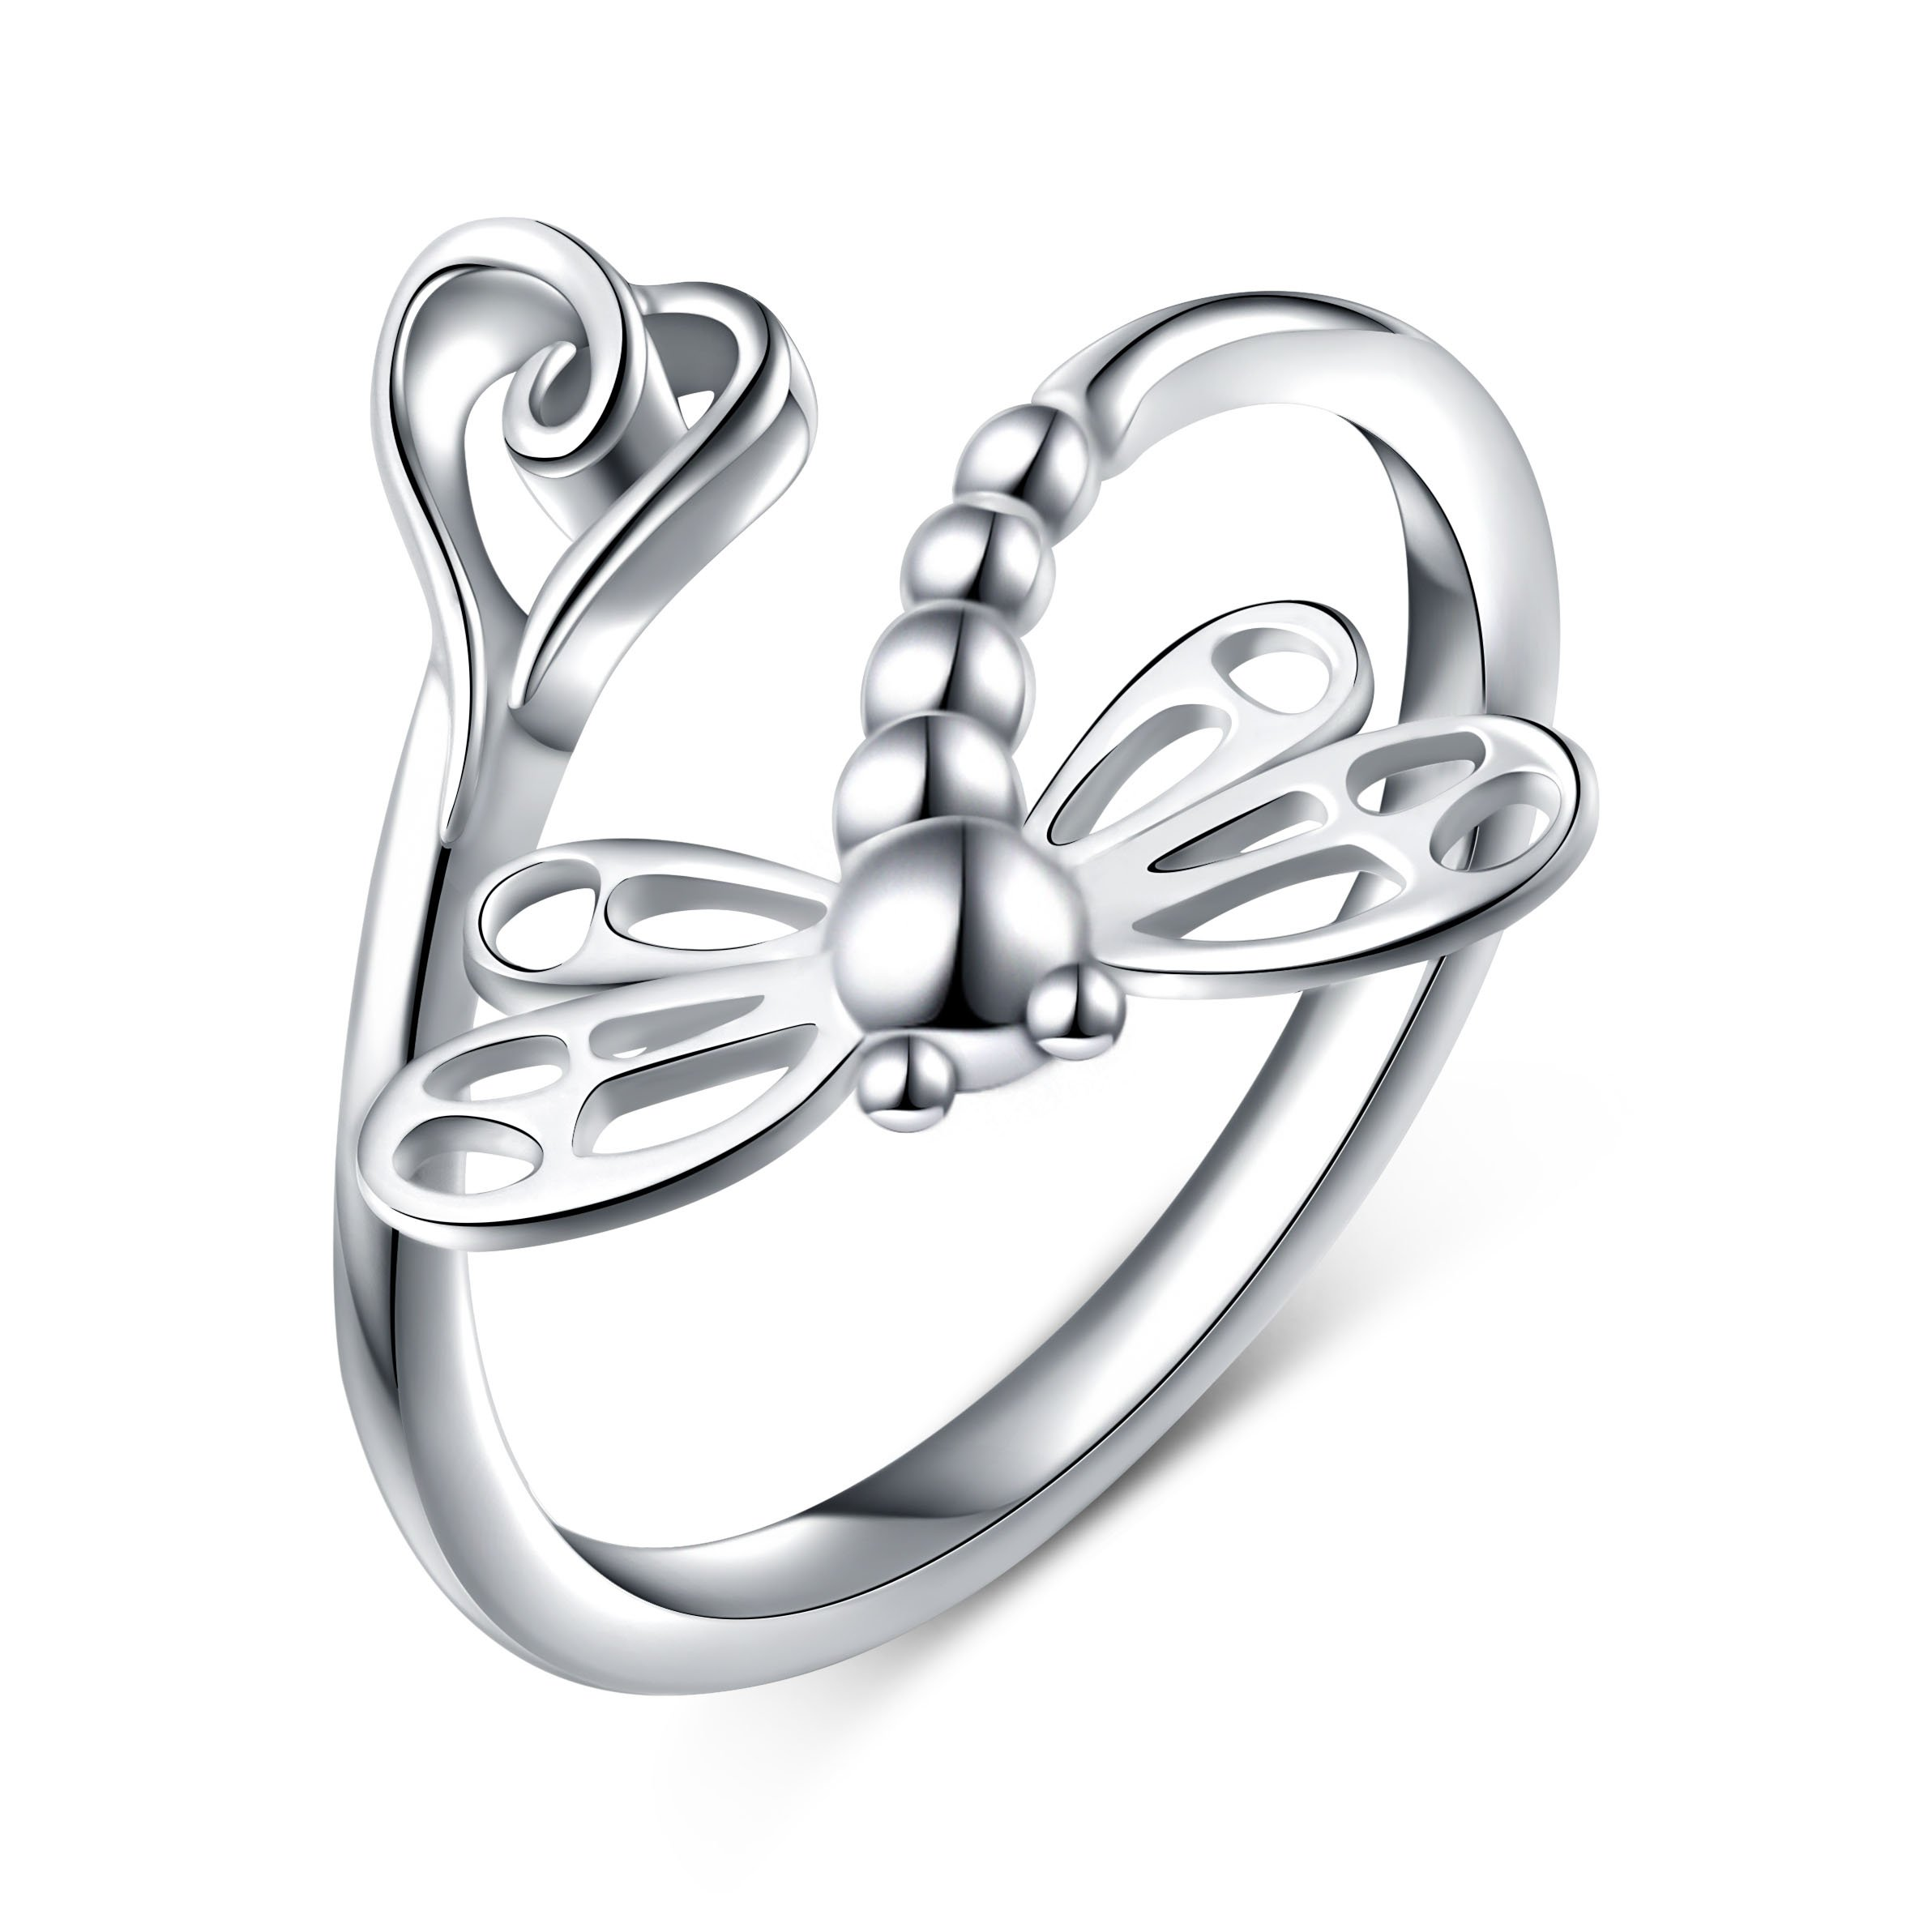 925 Sterling Silver Open Heart Dragonfly Rings for Women (Resizable Ring) by DAOCHONG